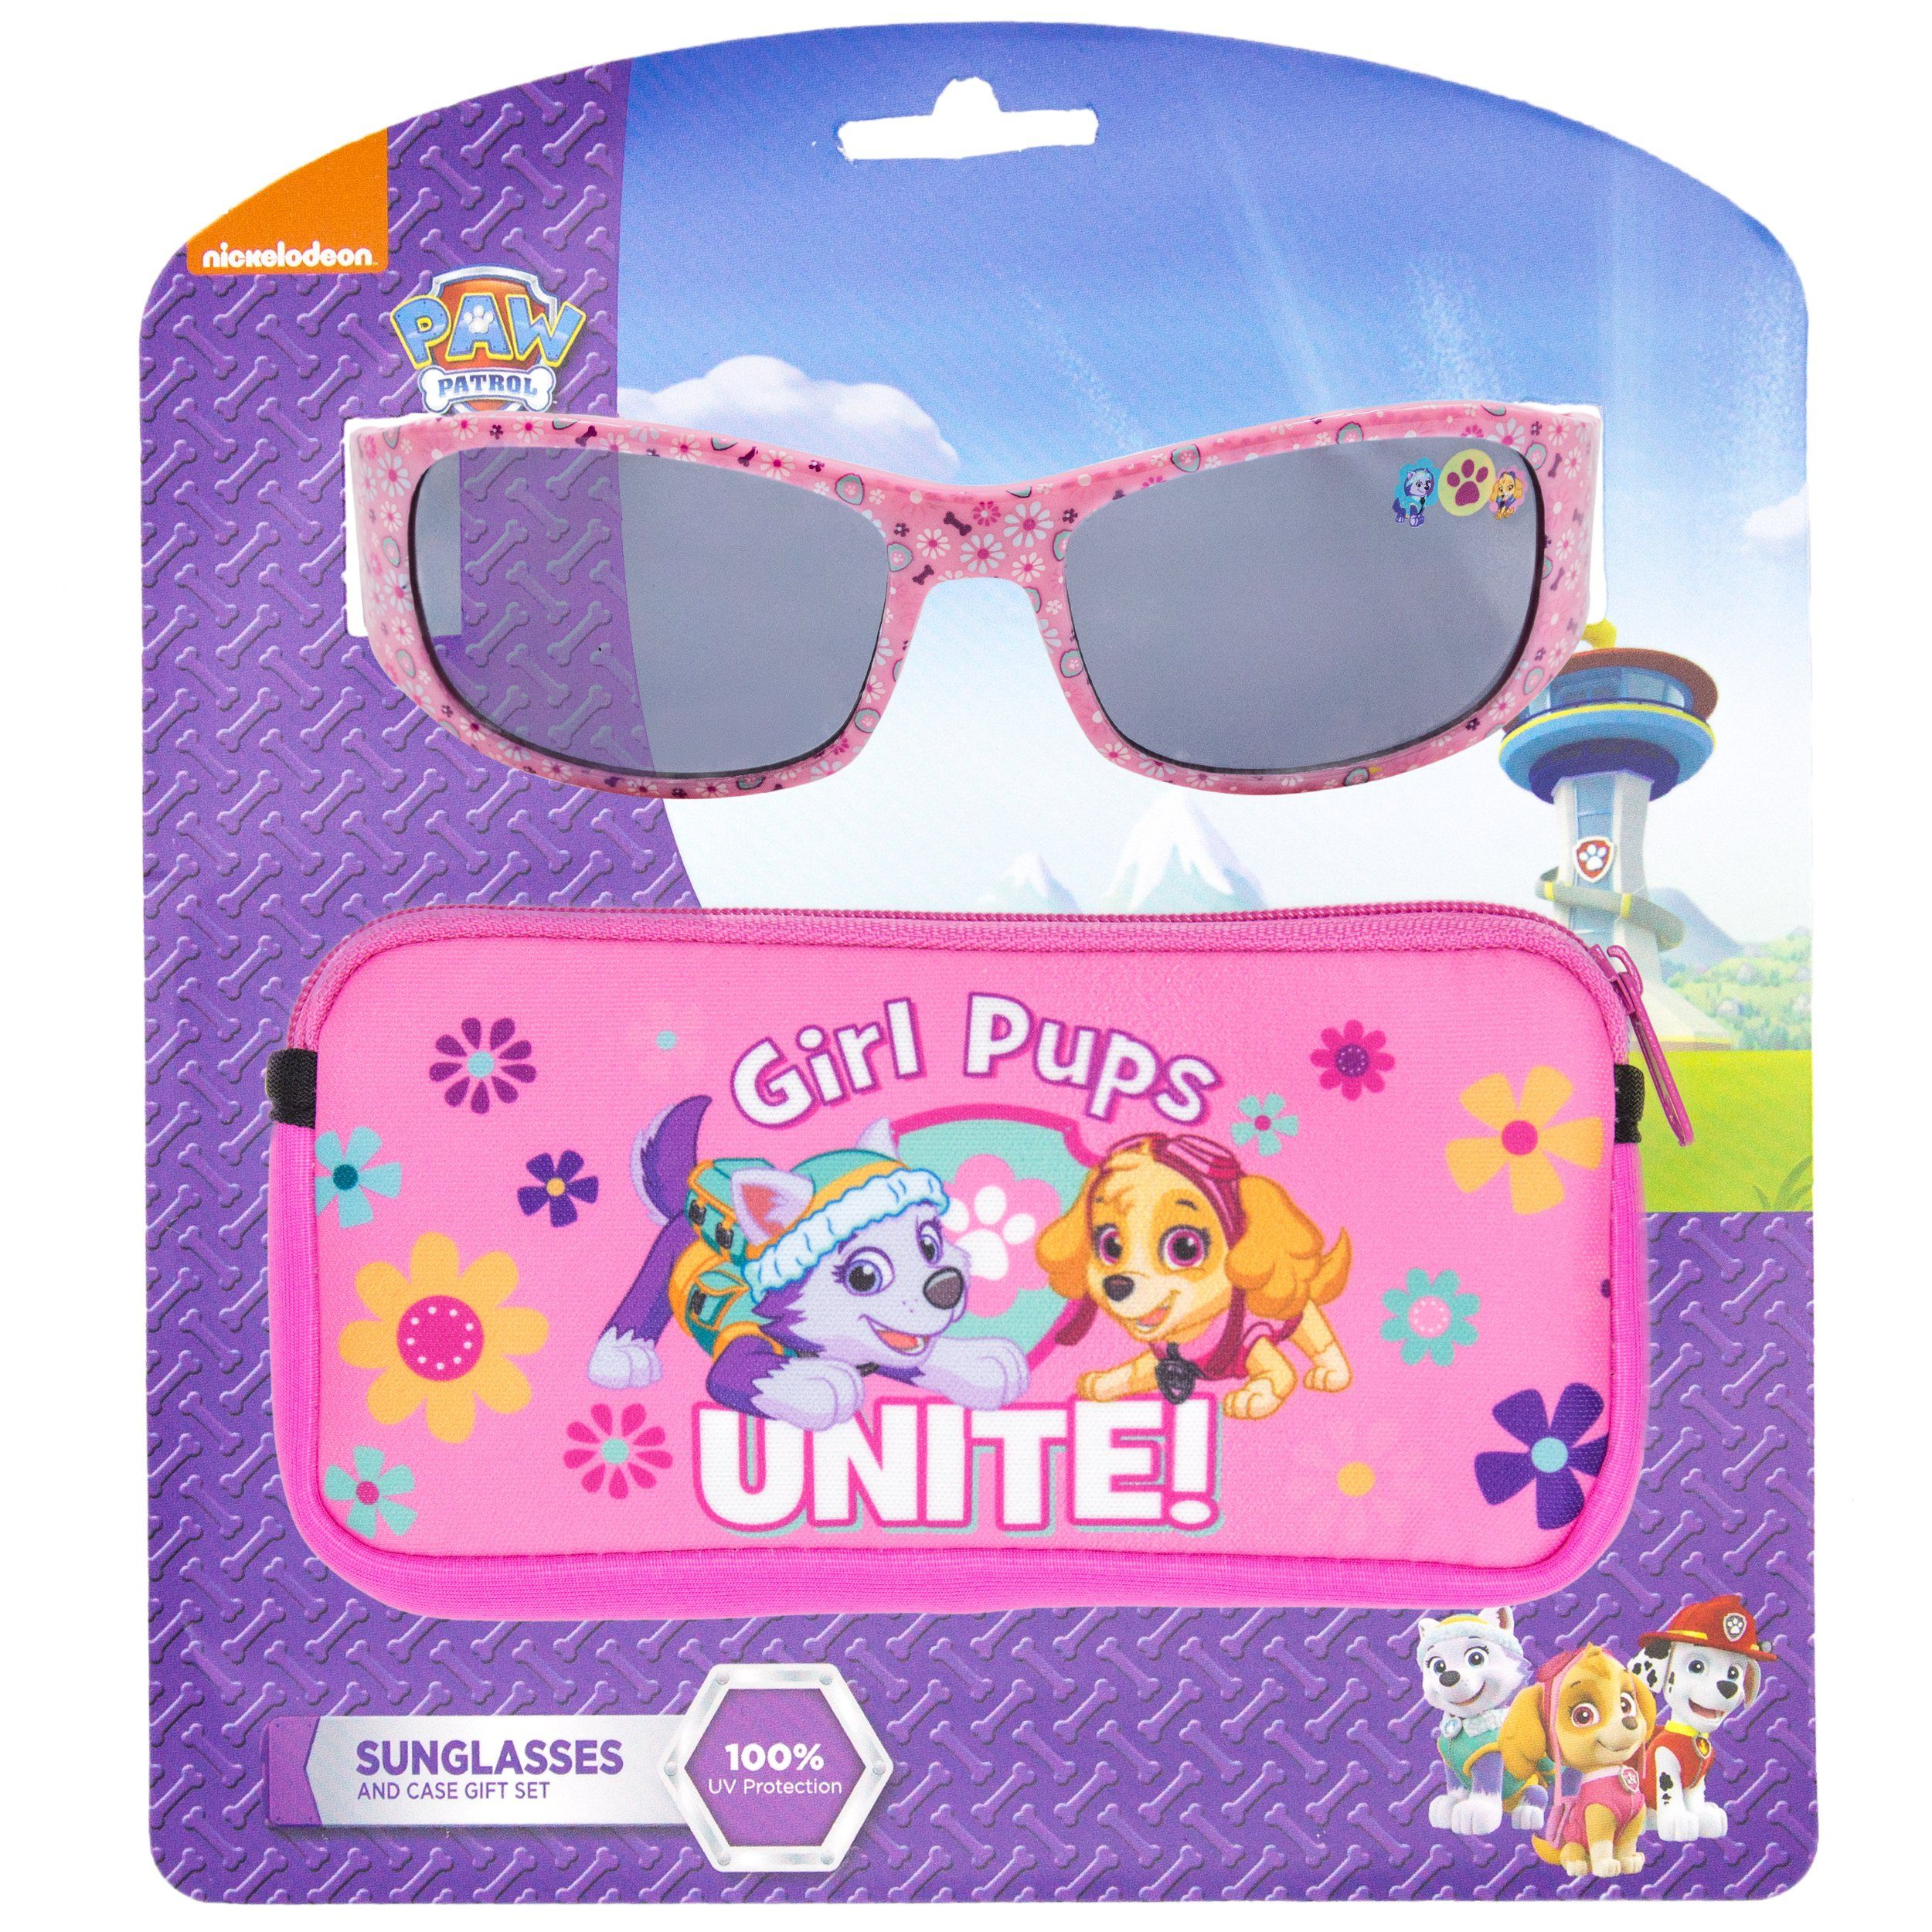 c4928218b2 Nickelodeon Paw Patrol Kids Children Girls Sunglasses with Soft Carrying  Case. Nickelodeon Paw Patrol Girls